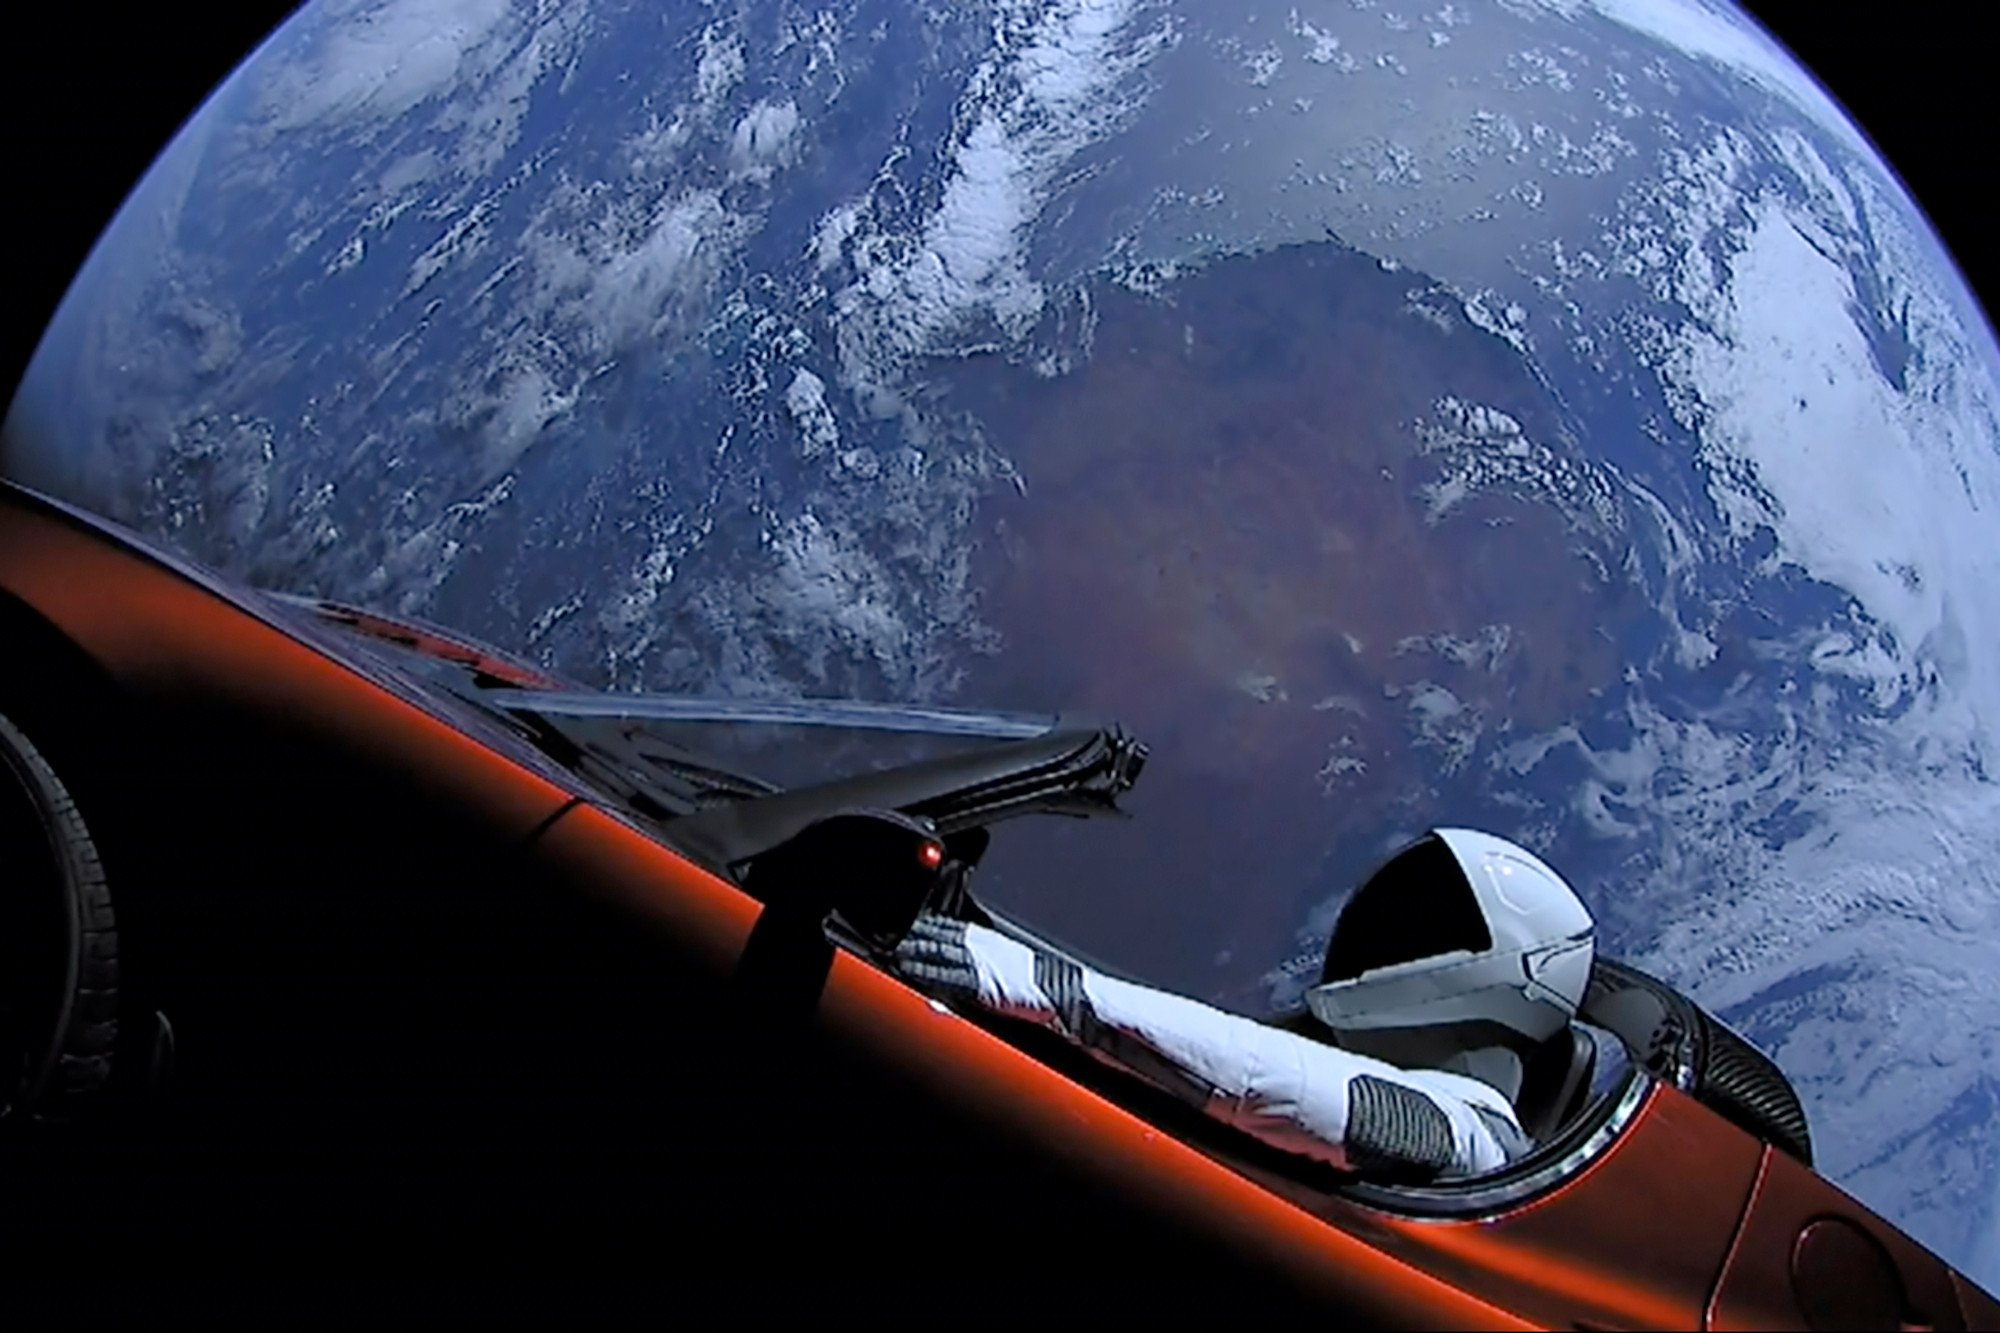 You can track Elon Musk's Tesla as it travels towards Mars